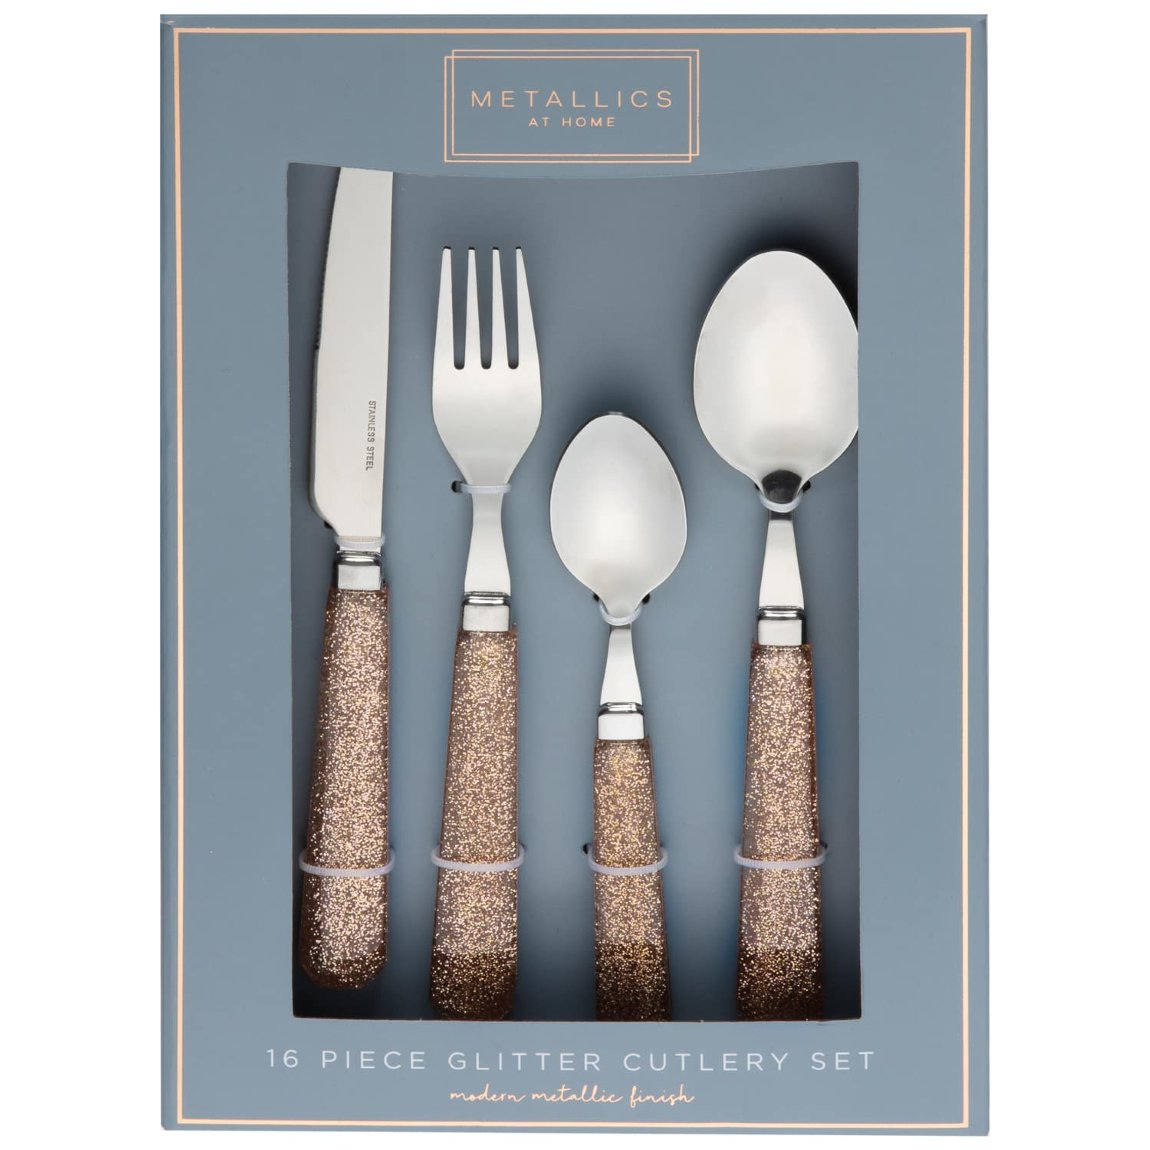 Gold Metallics Glitter Cutlery Set 16pc